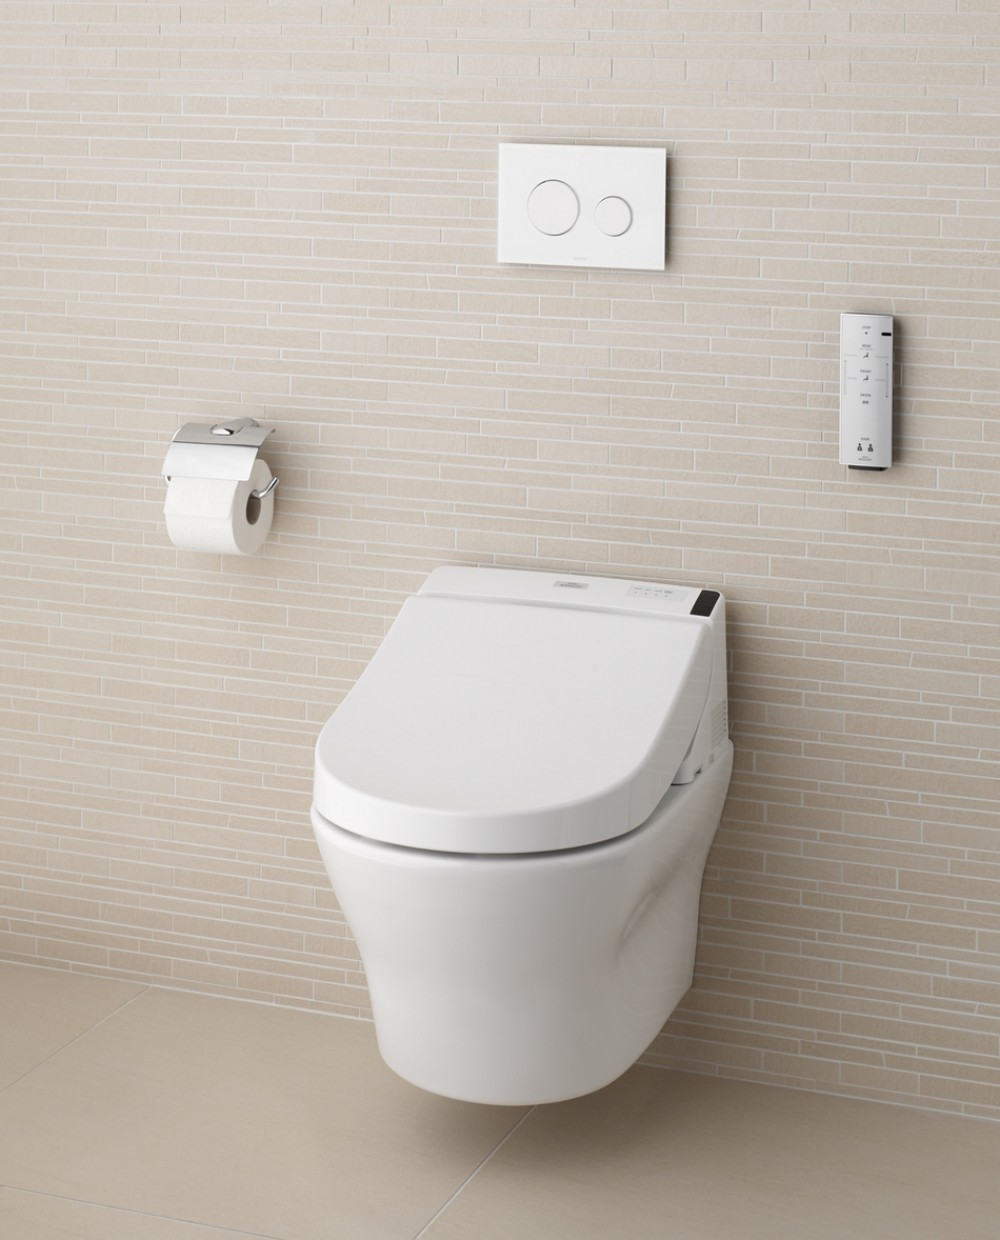 combination WASHLET GL 2.0 (with hidden connections) + TOTO WC MH, wall-hung only for WASHLET